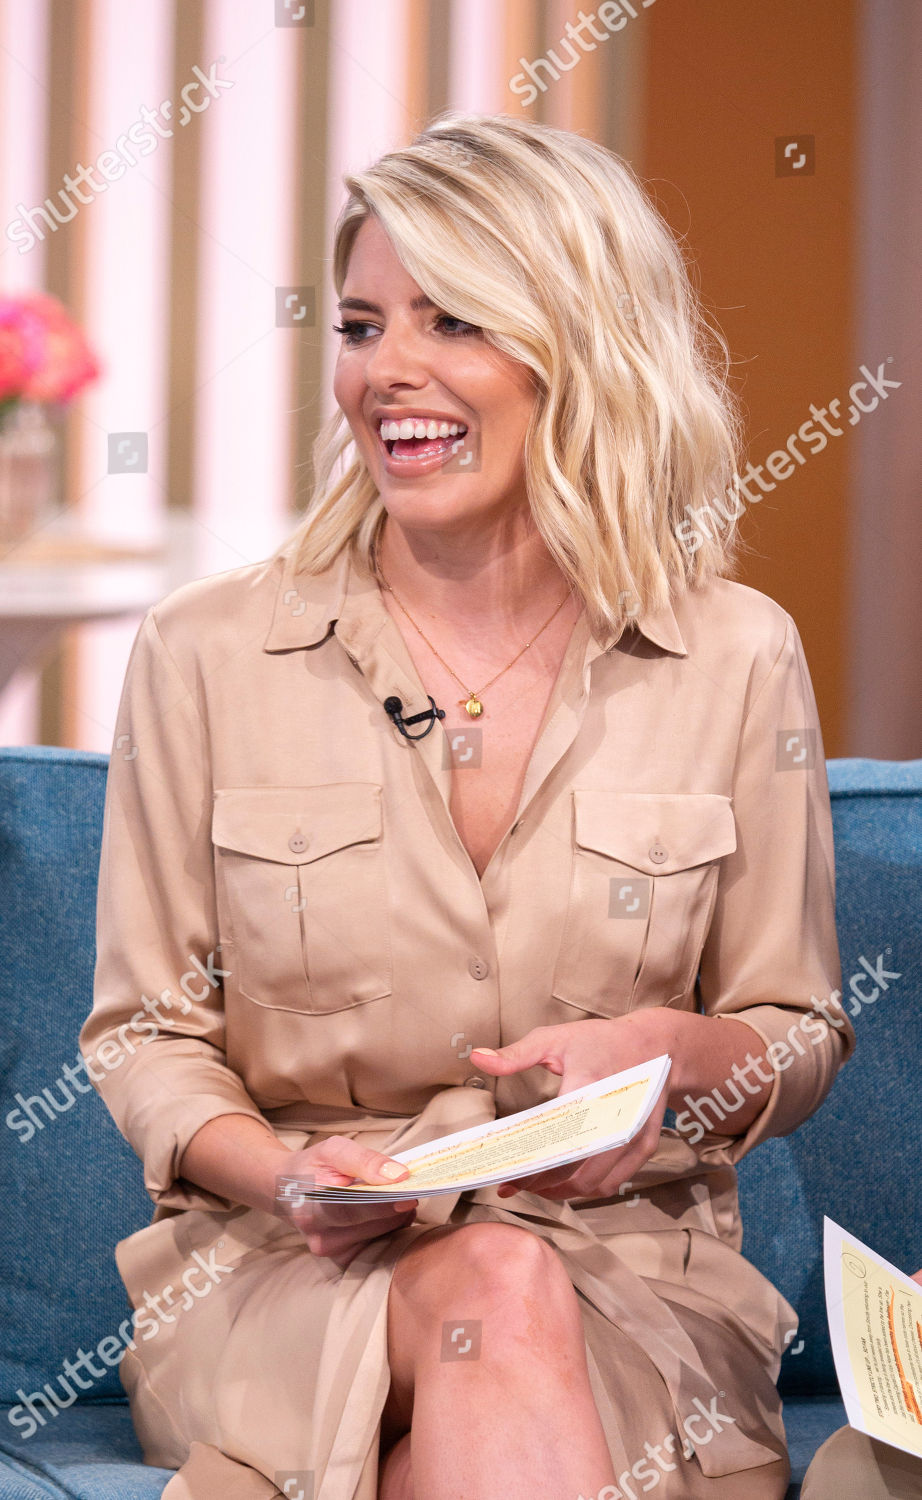 Mollie king this morning tv show in london - 2019 year